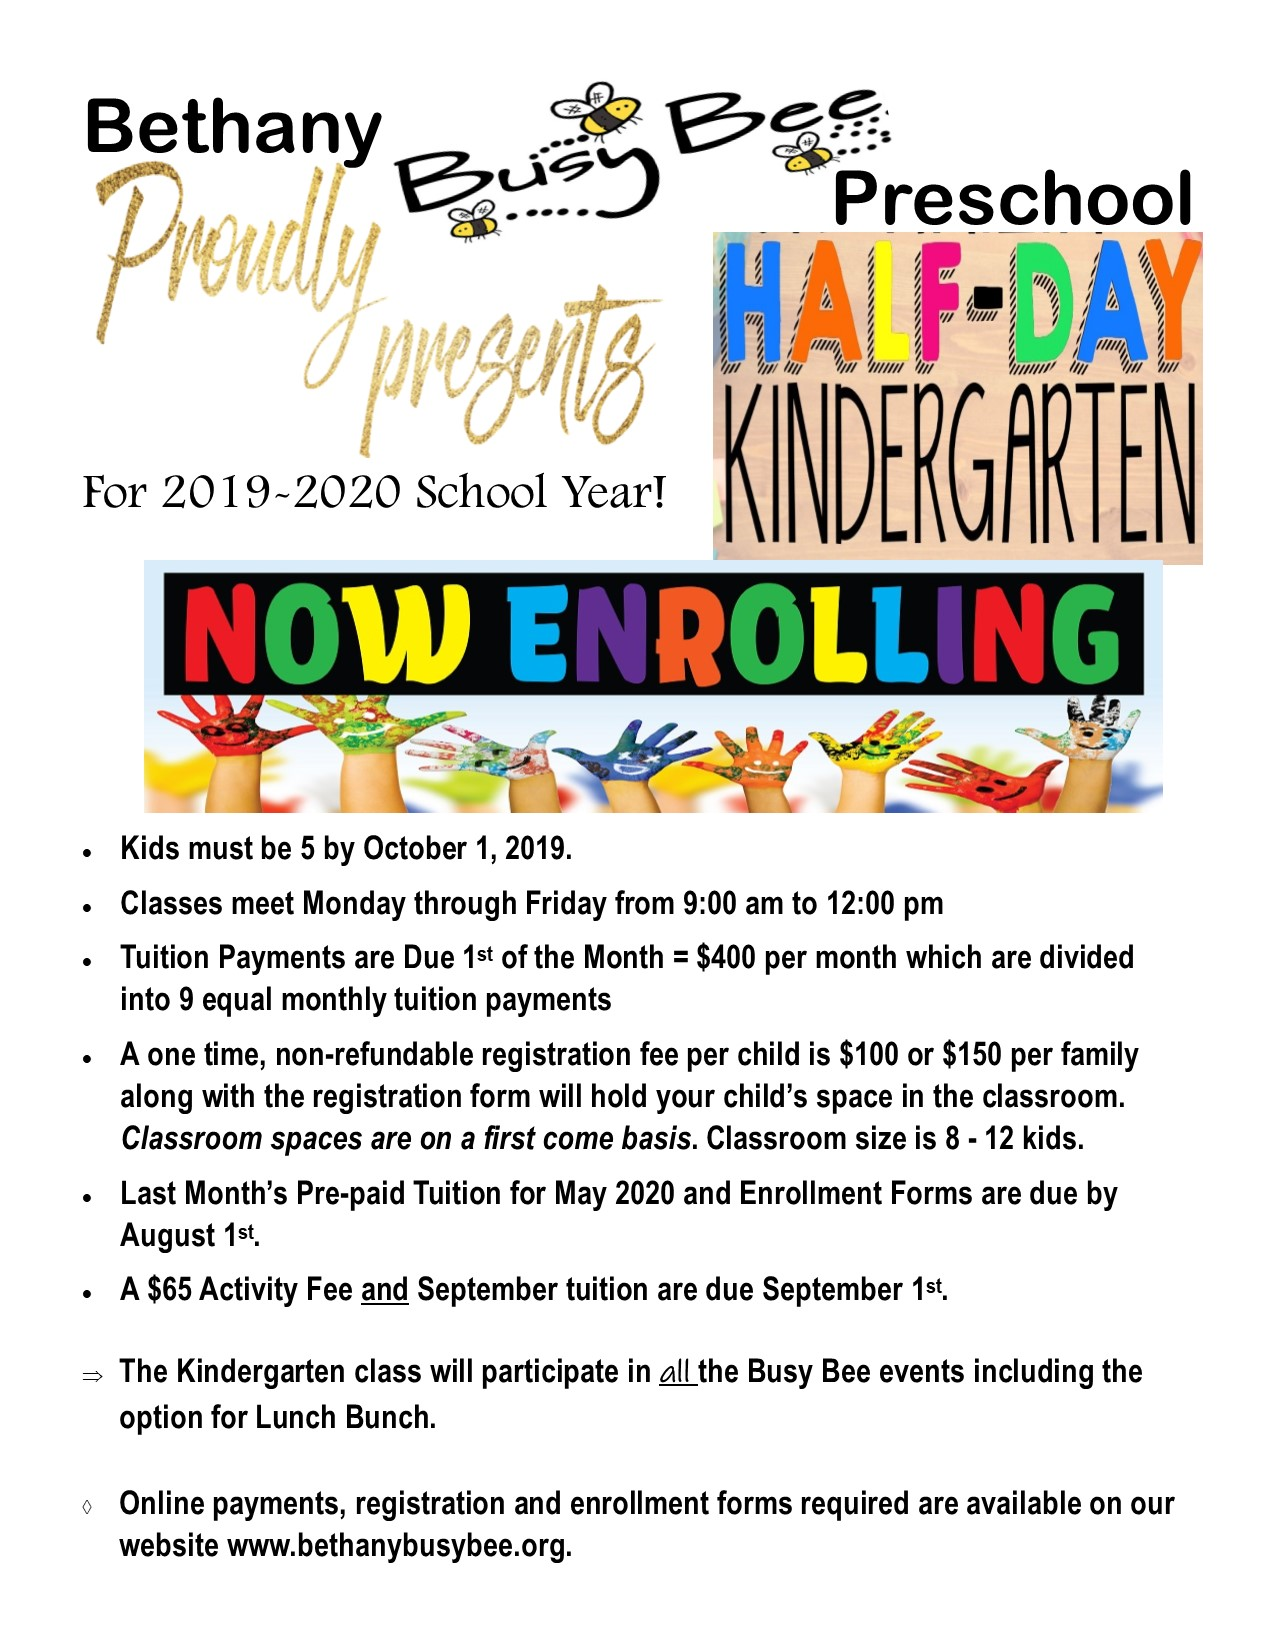 Bethany Busy Bee Preschool | Providing a Balanced Early Childhood